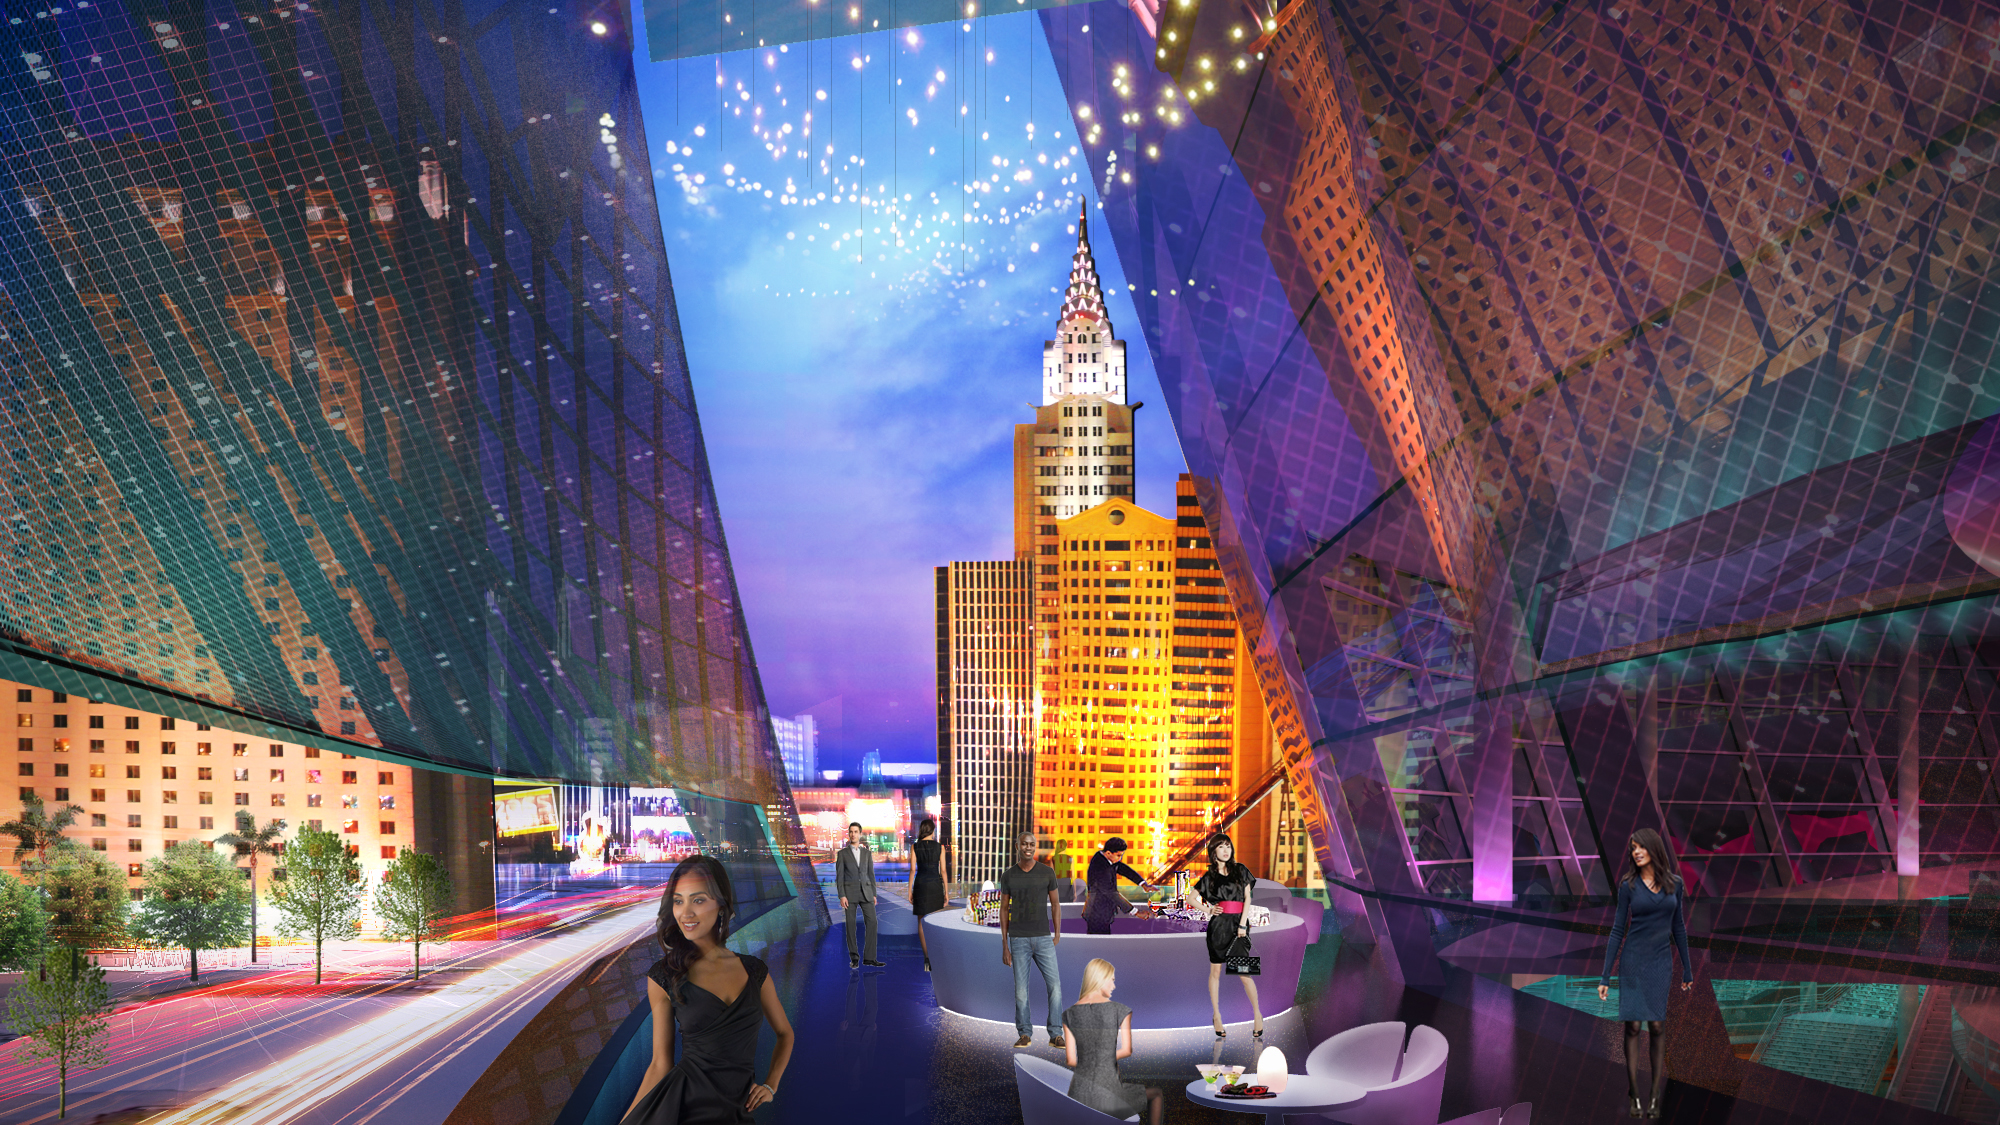 mgm project The project will include regional debuts of mgm's brands with a dubai version of the famous bellagio hotel.